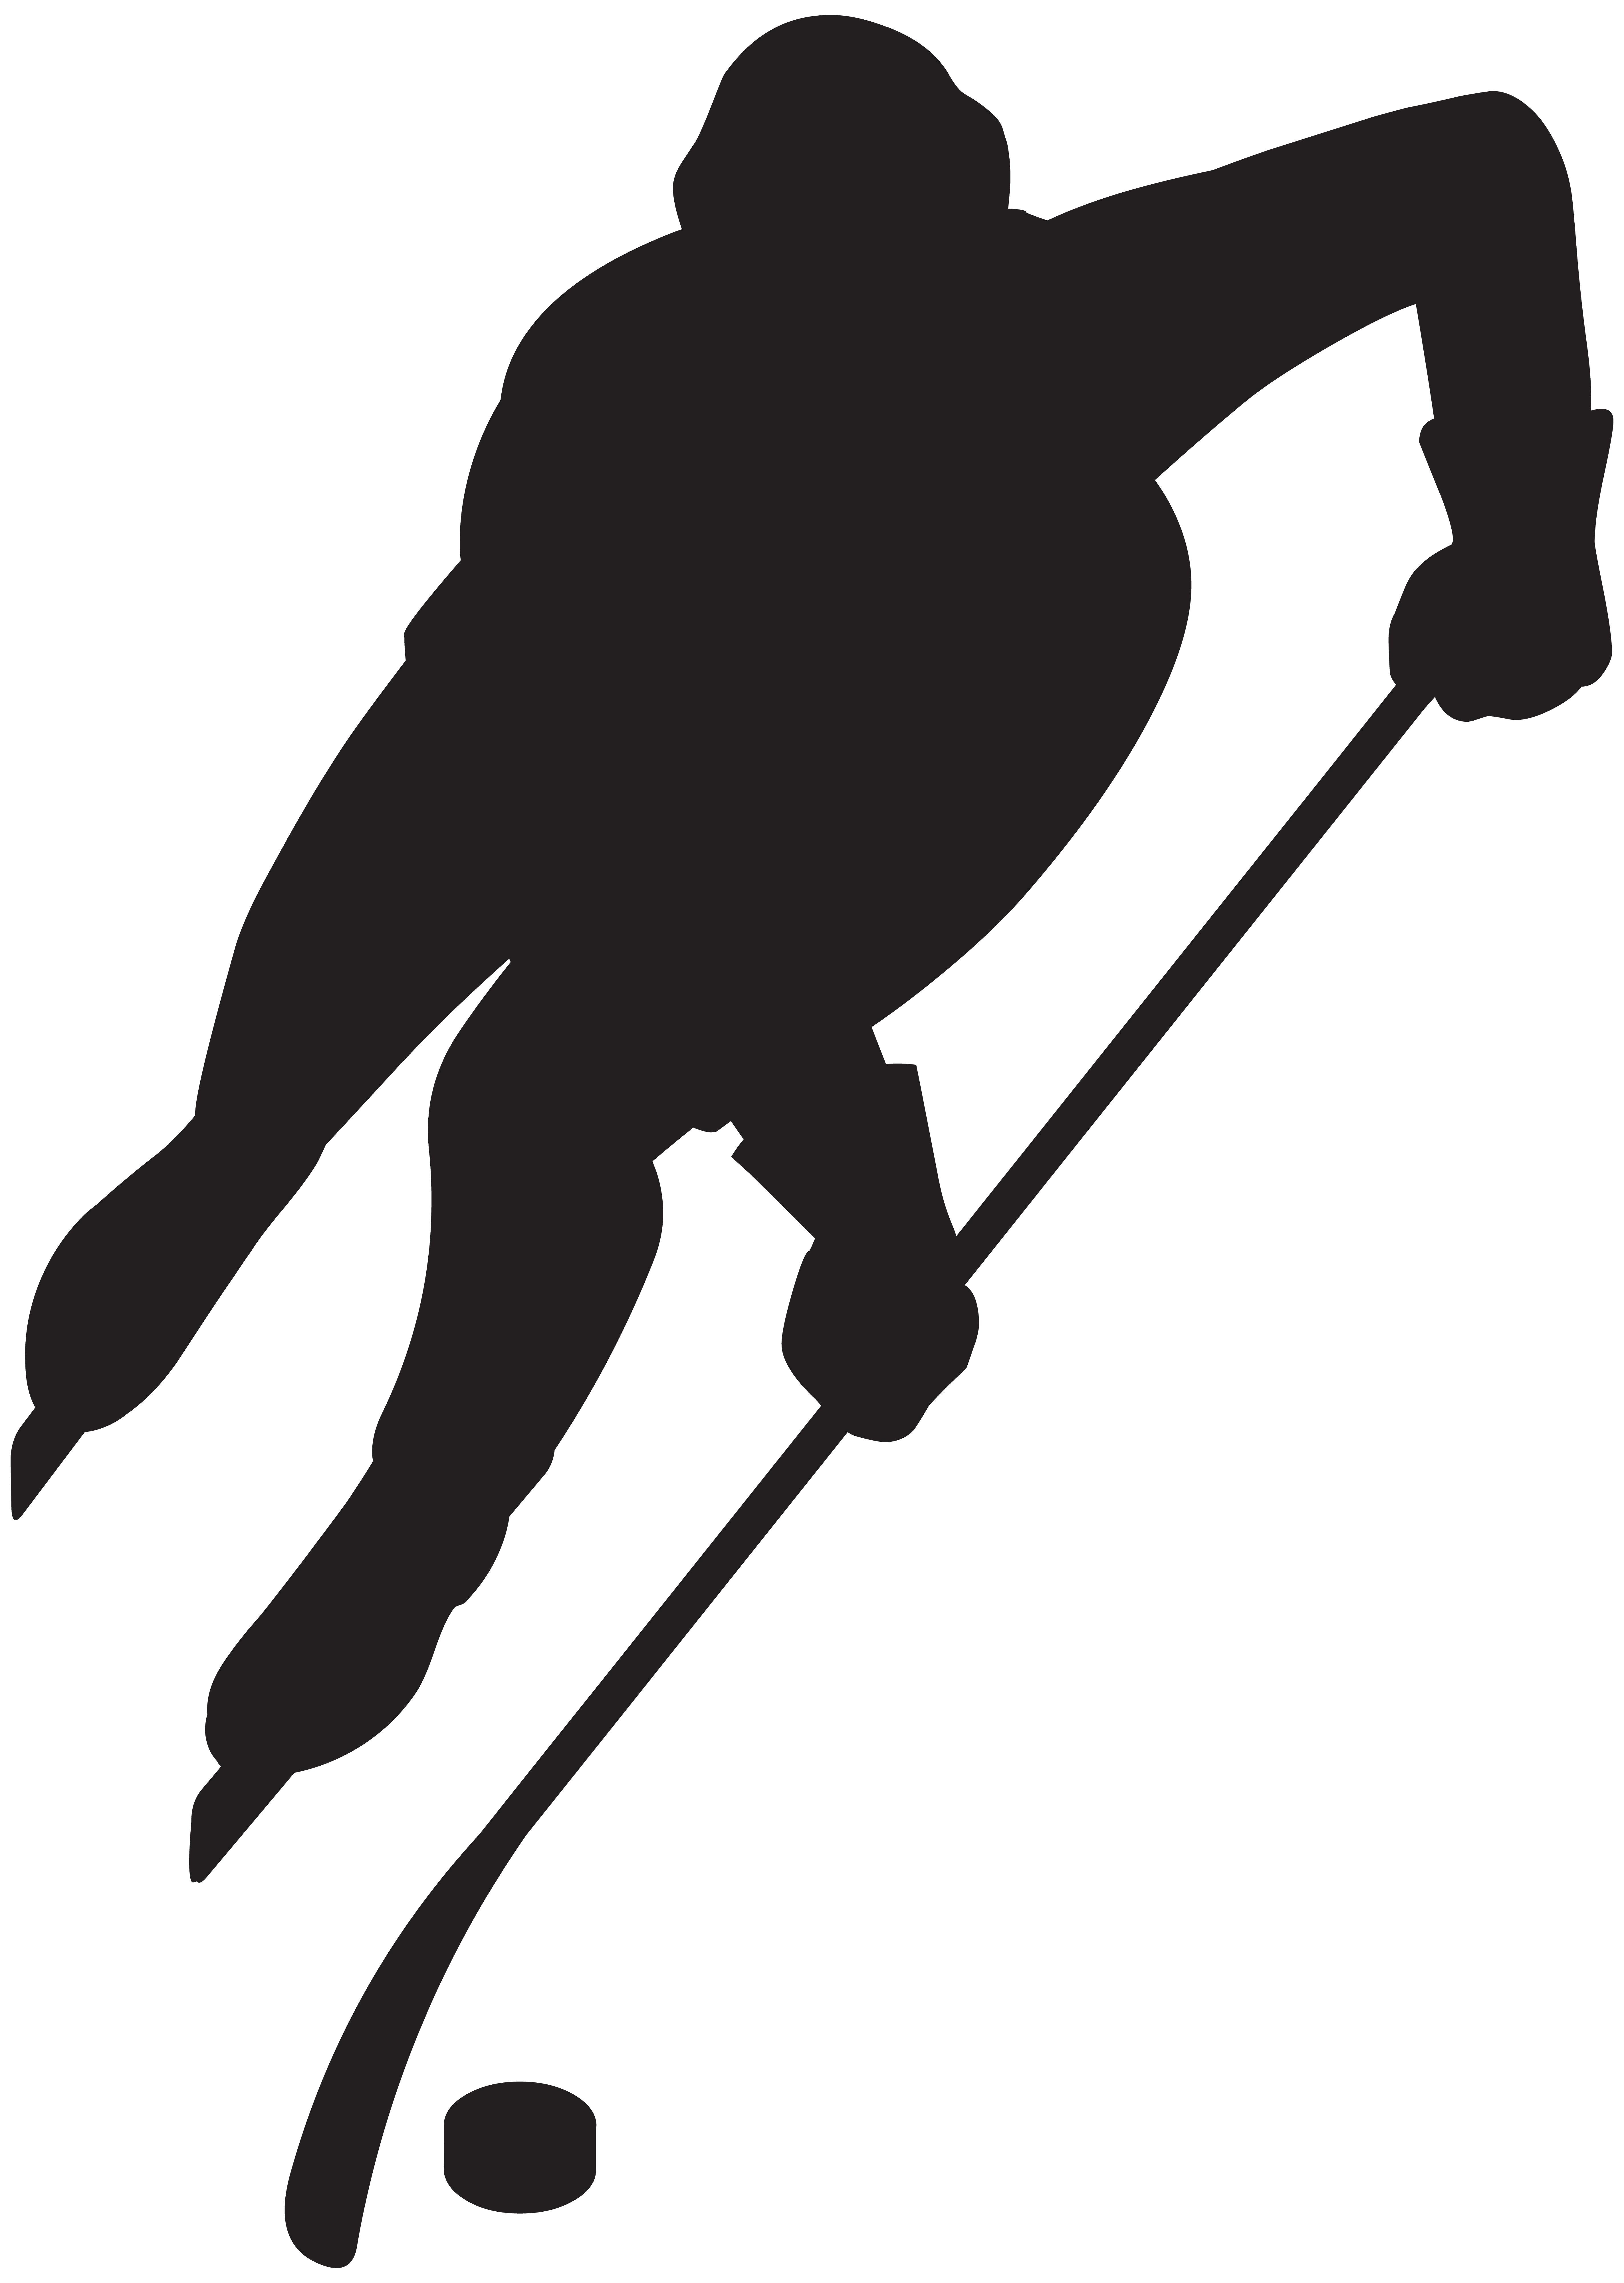 Hockey Player Silhouette PNG Clip Art Image.